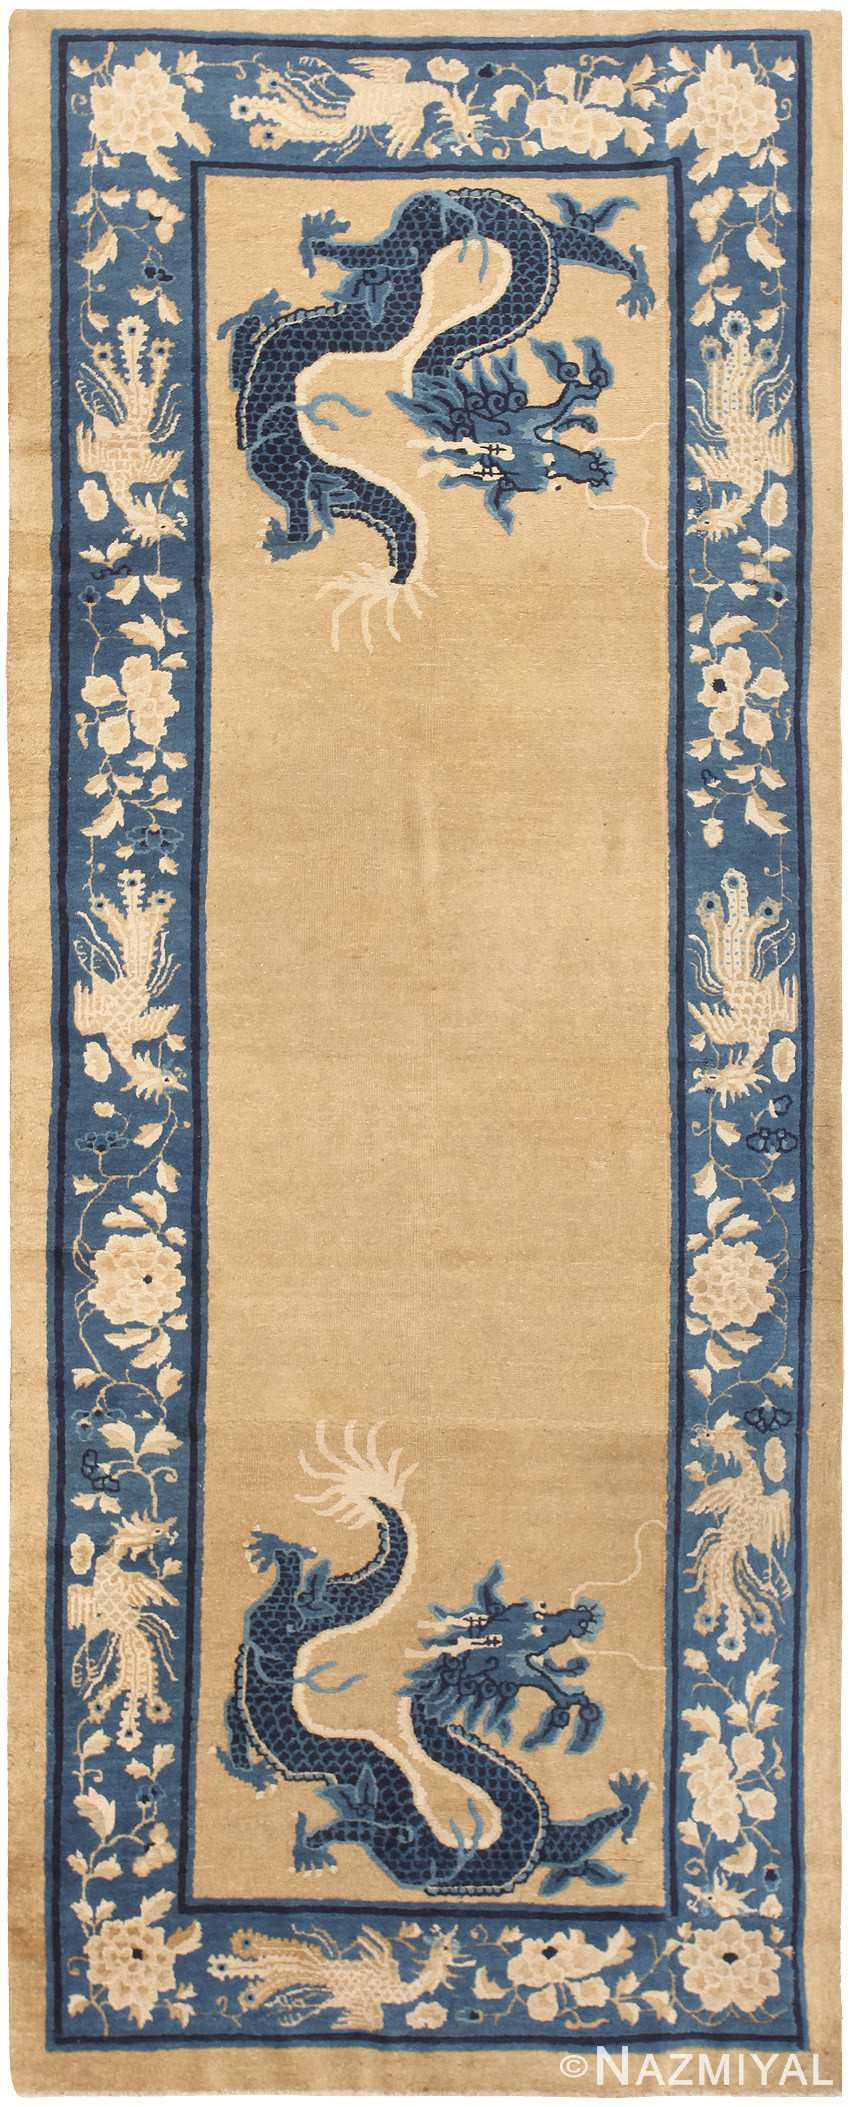 Antique Chinese Rug 46818 Nazmiyal